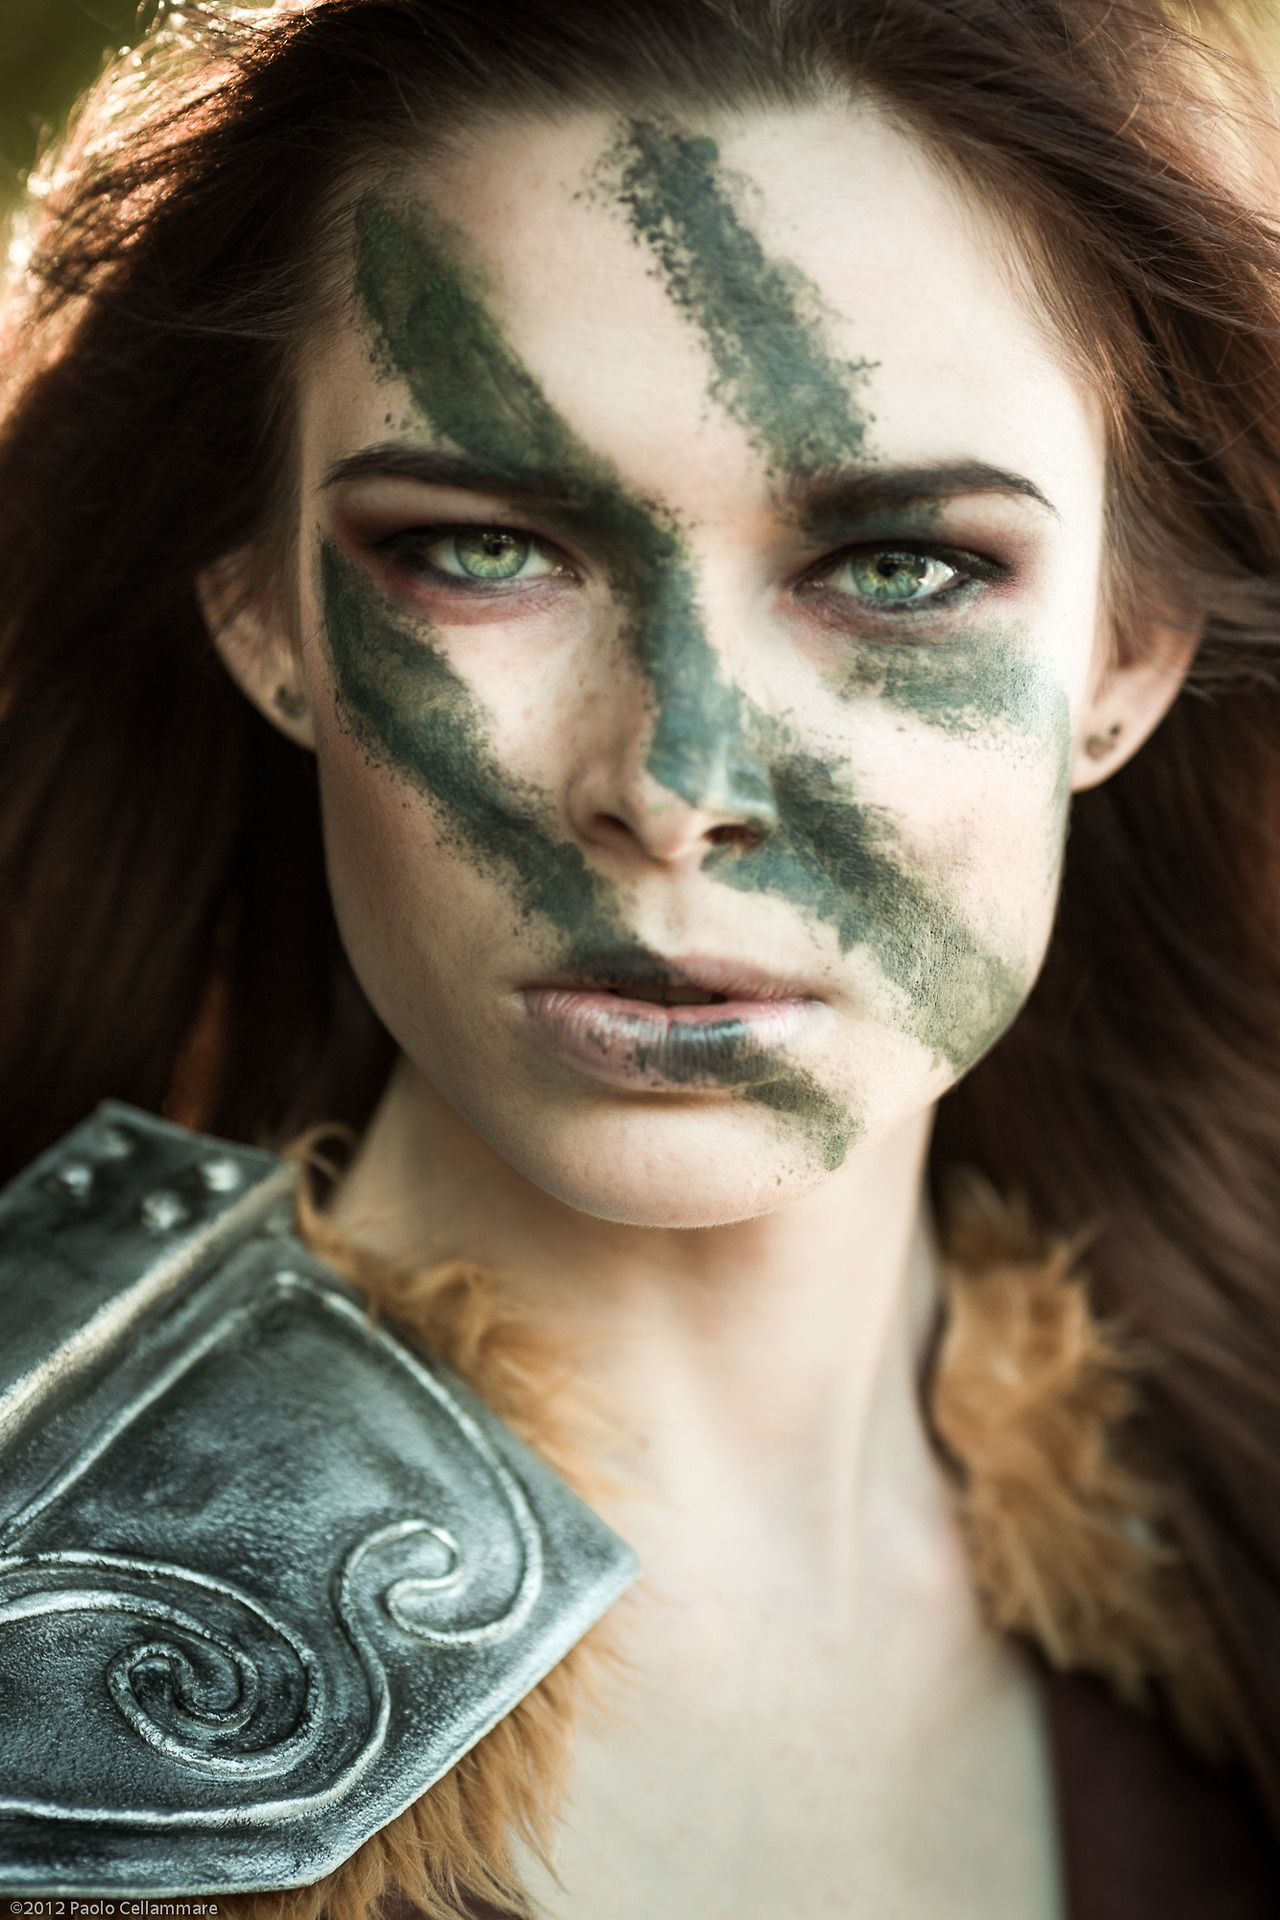 elderpedia: Aela the Huntress (Skyrim) Cosplay By Chloe Dykstra.